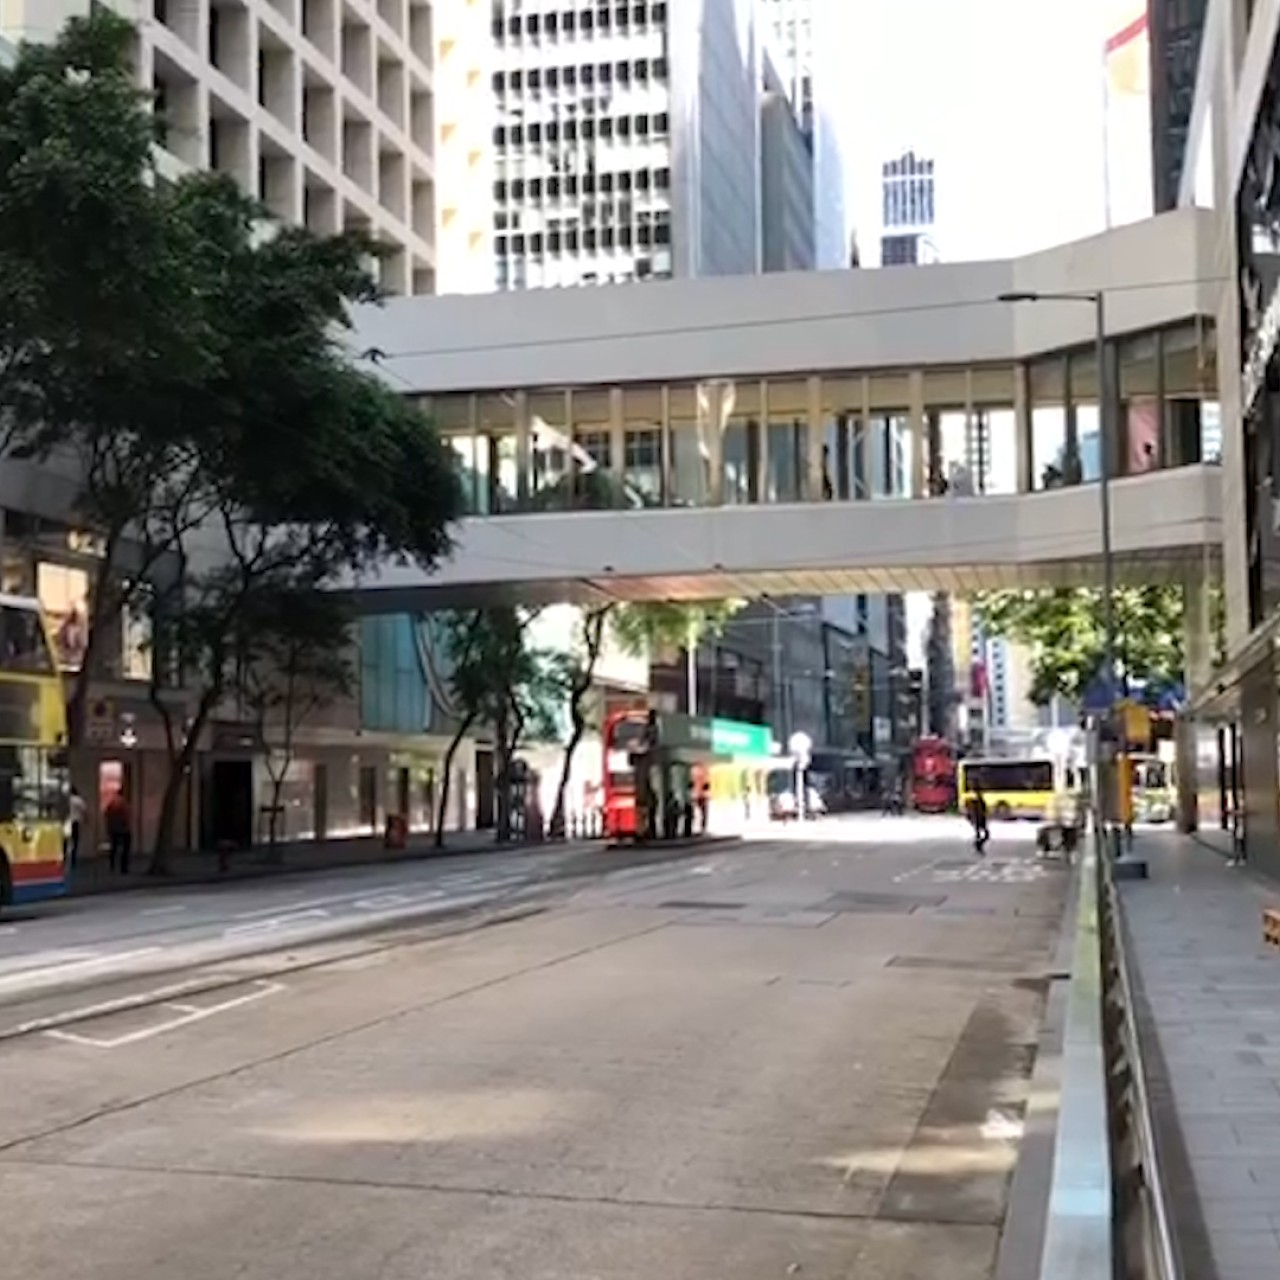 Road strike by KMB bus drivers' union over pay dispute ends before